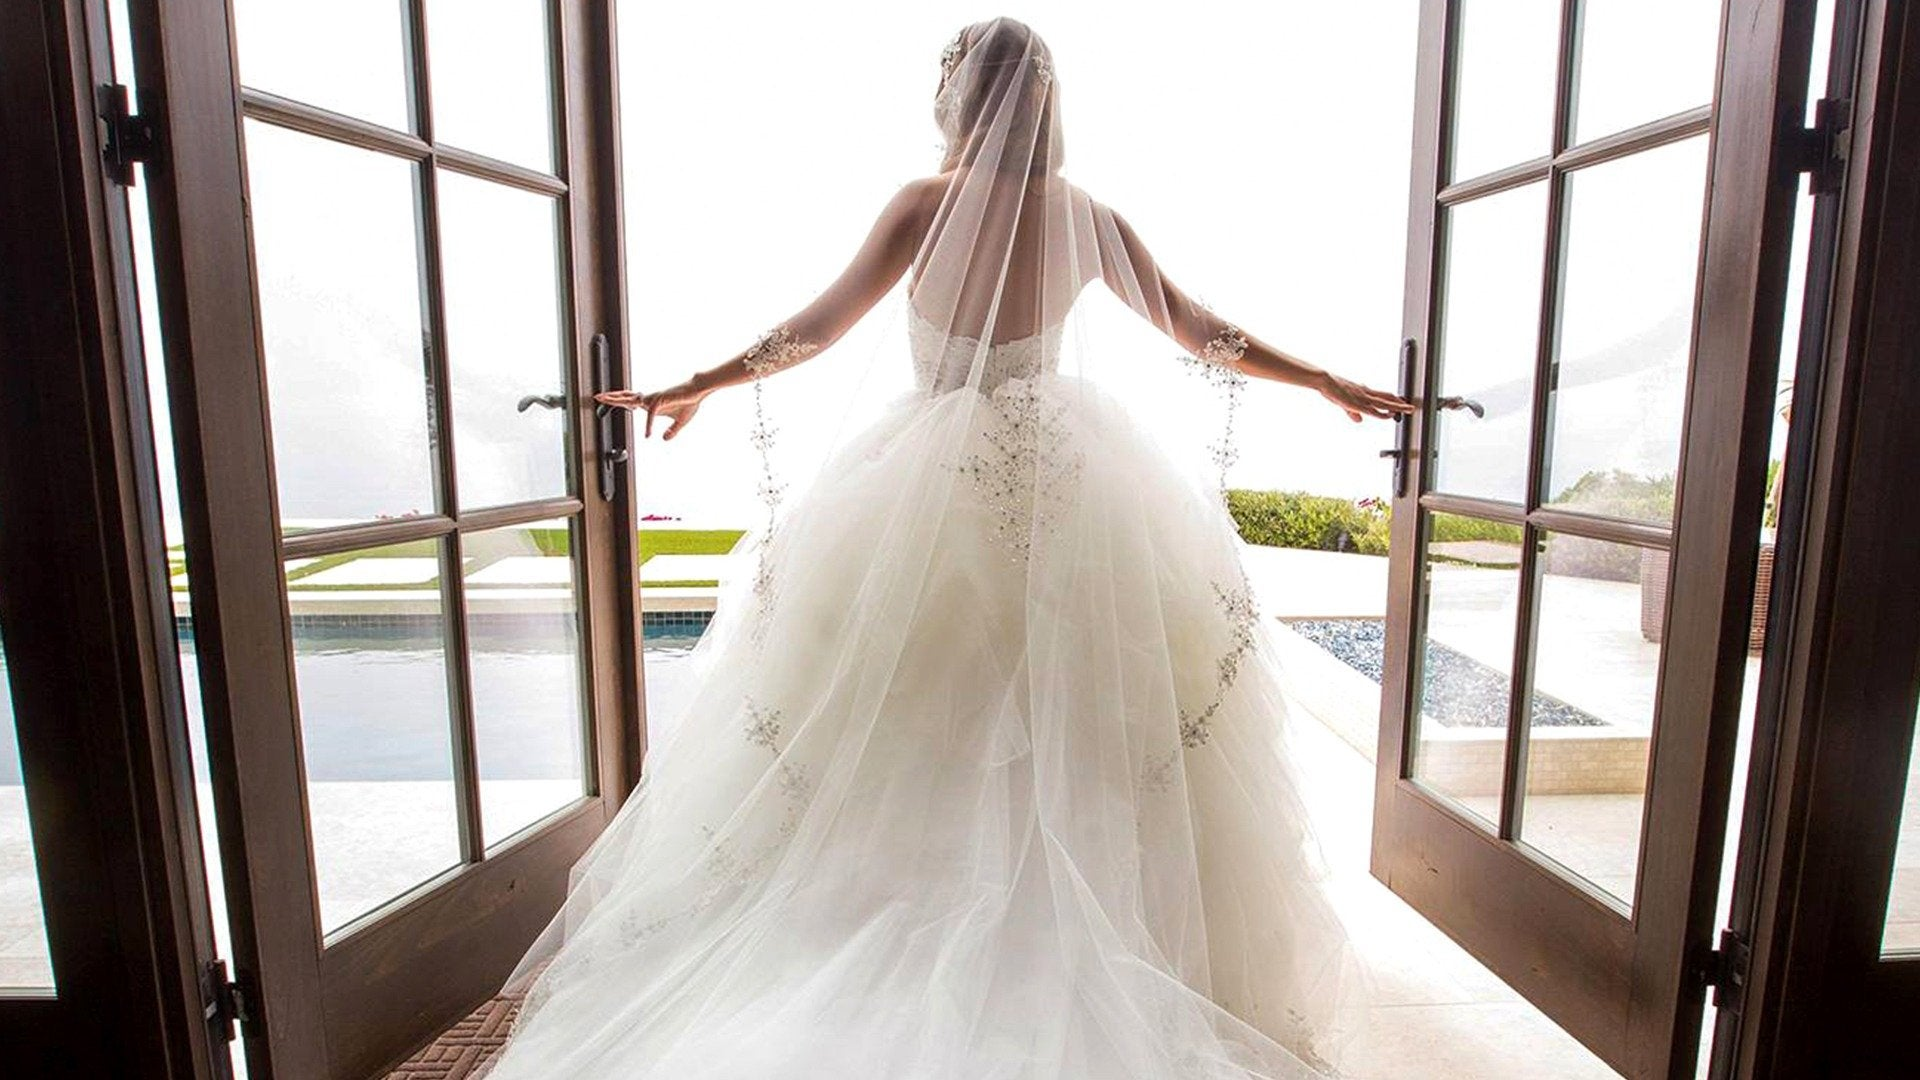 Say Yes to the Dress: Since I Said Yes